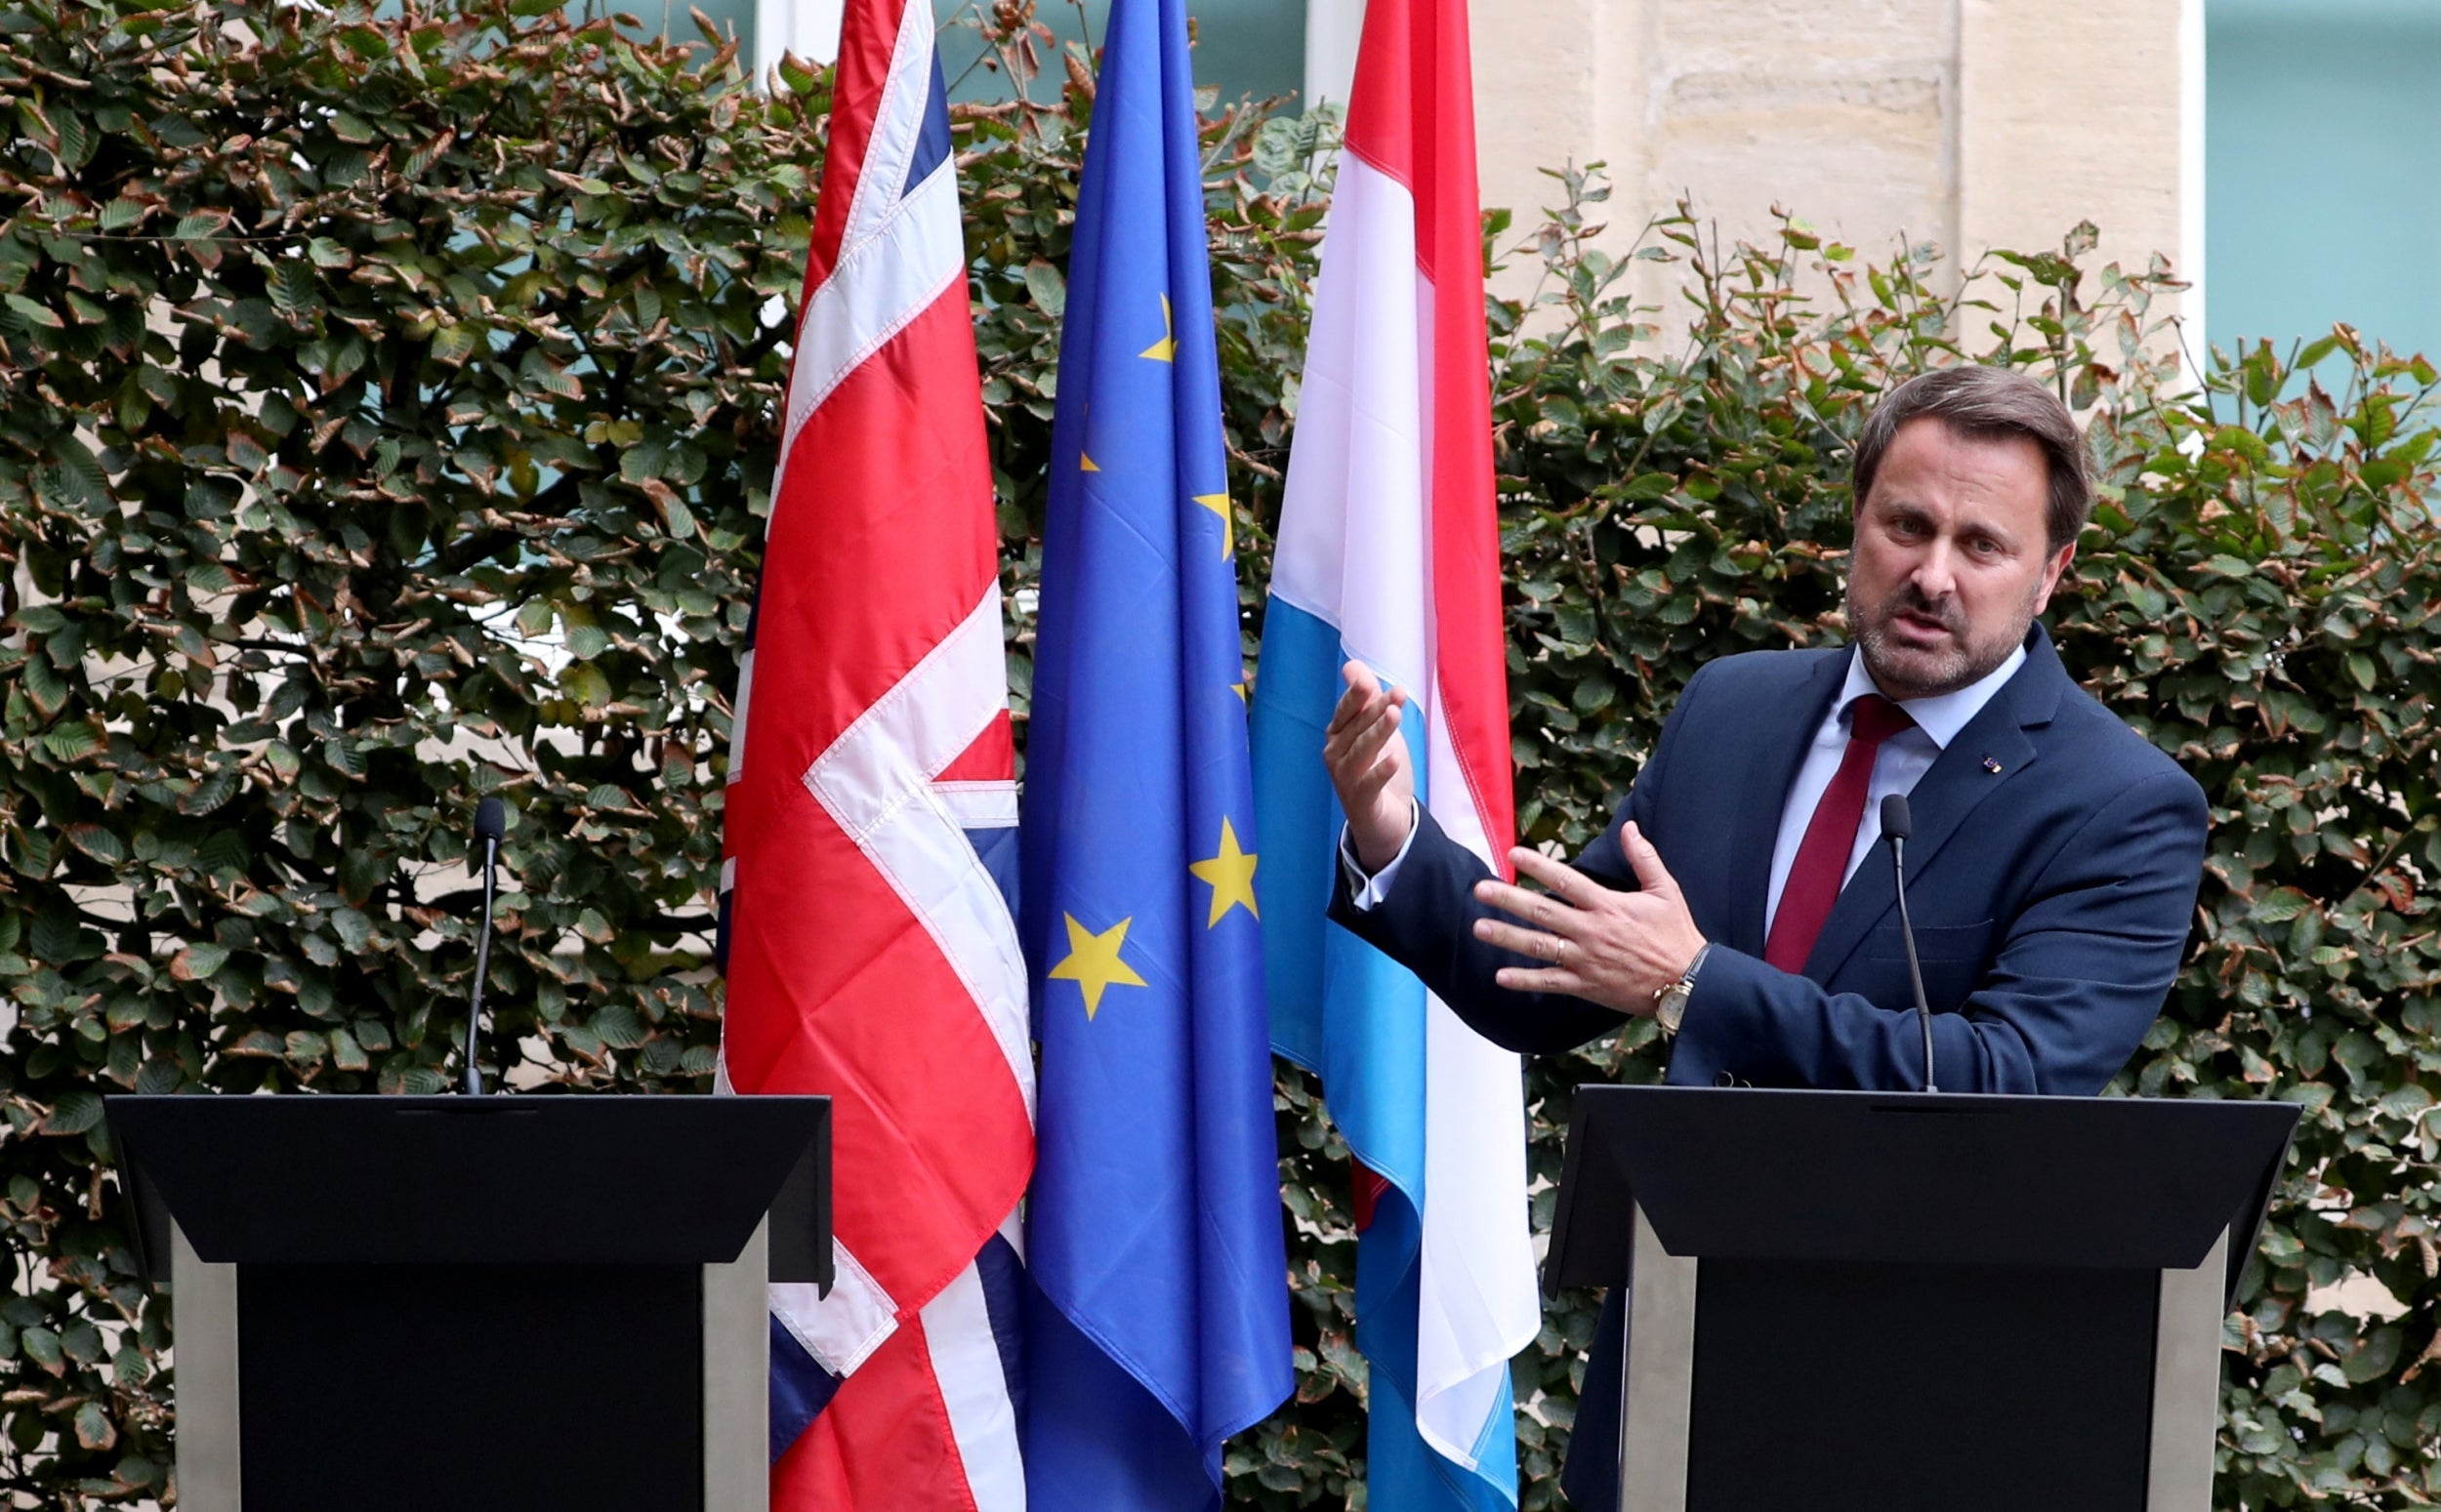 Boris Johnson 'chickens' out of own press conference amid noisy protests, leaving empty podium next to Luxembourg's PM